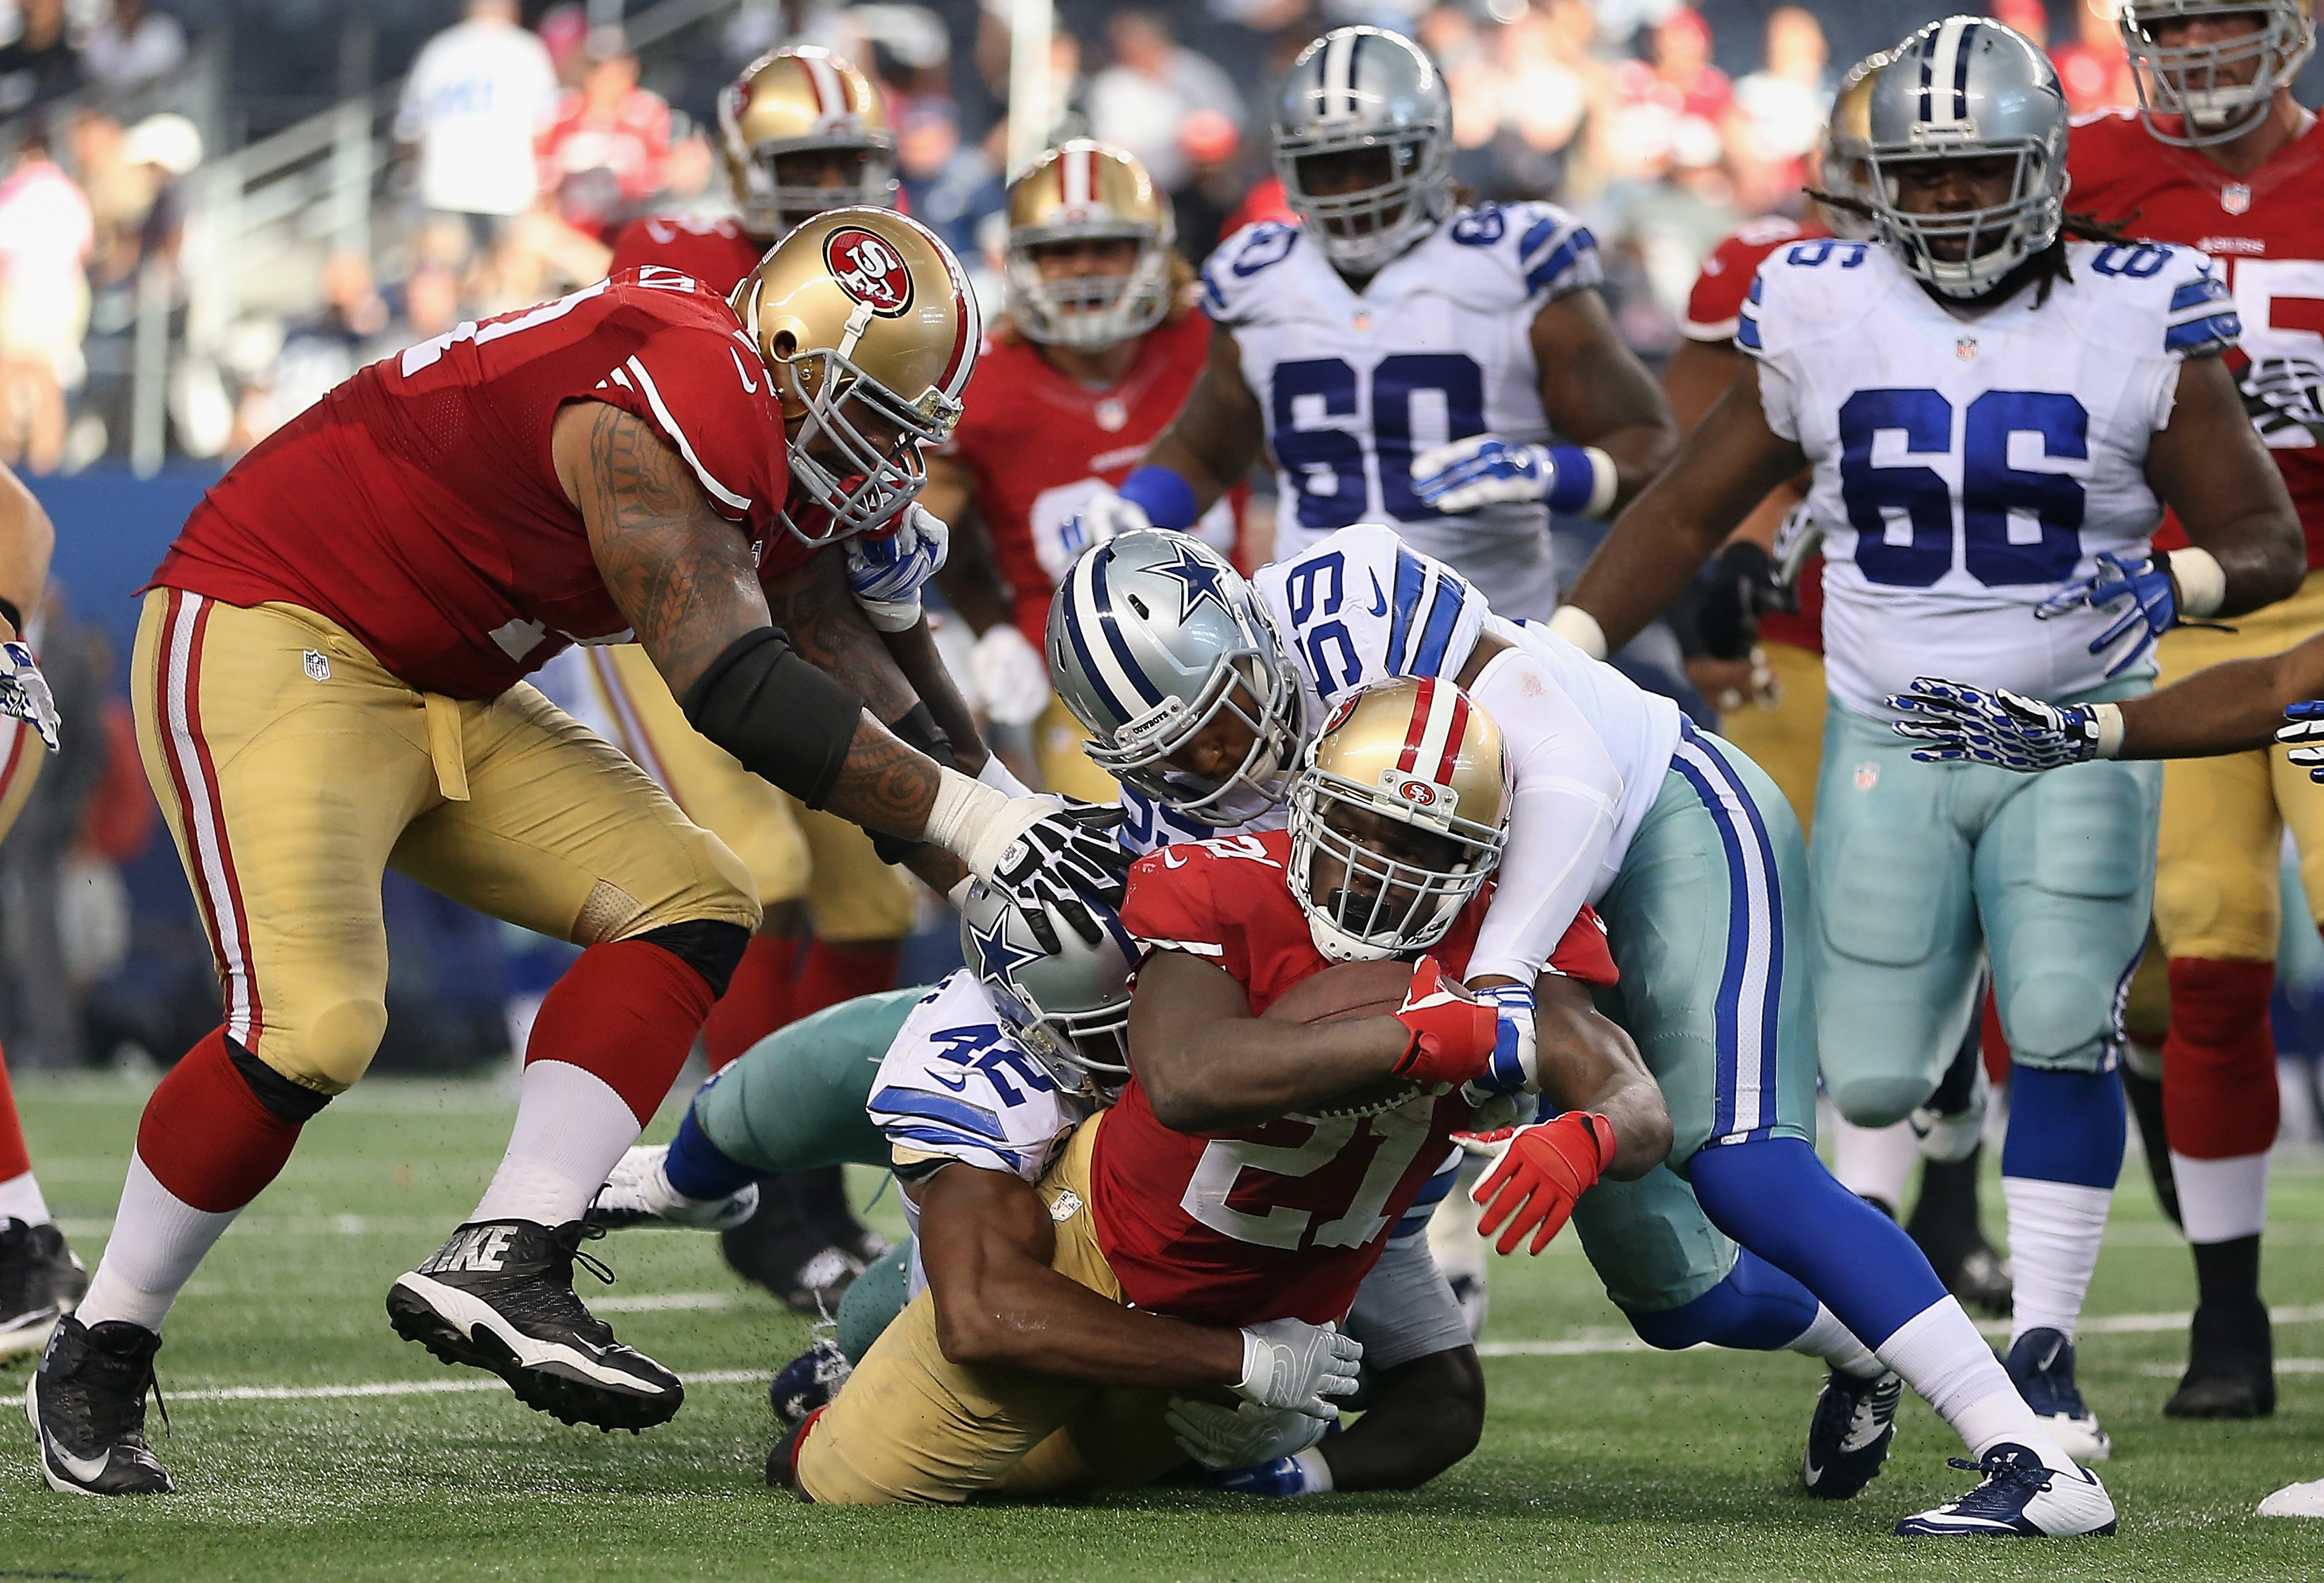 Cowboys Blog - Dallas Cowboys vs San Francisco 49ers: 6 Things To Watch For